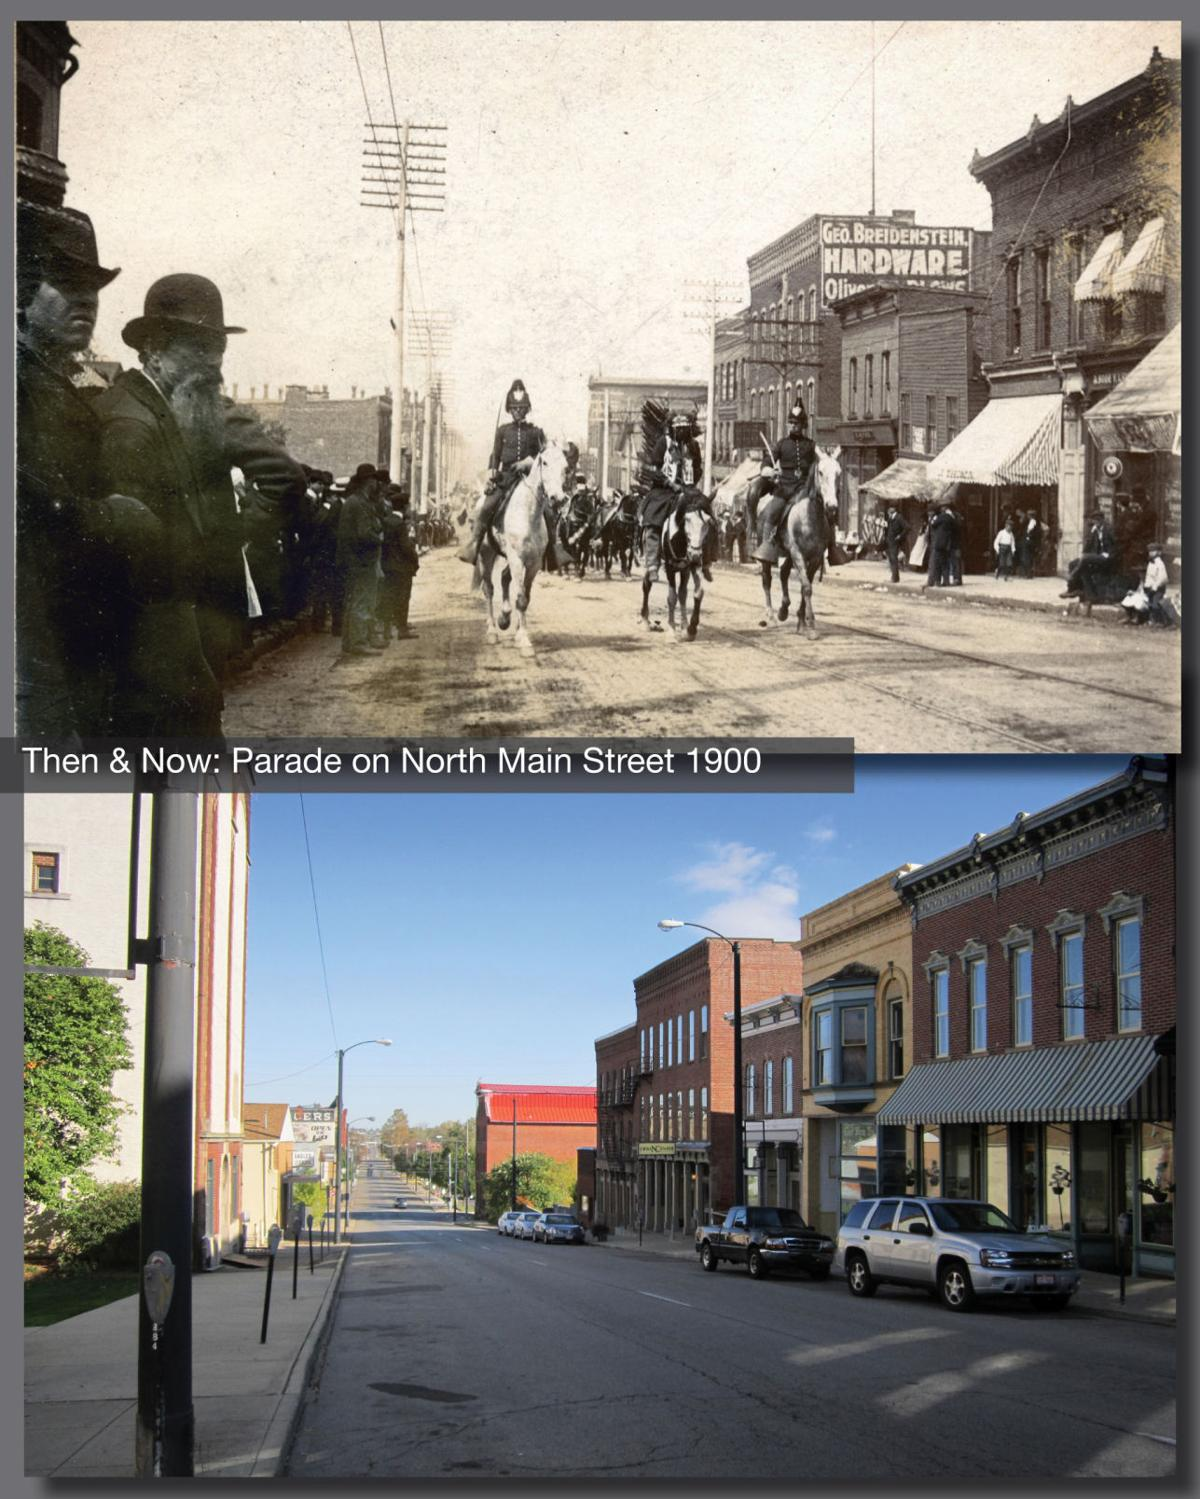 Then & Now: Parade on North Main Street 1900